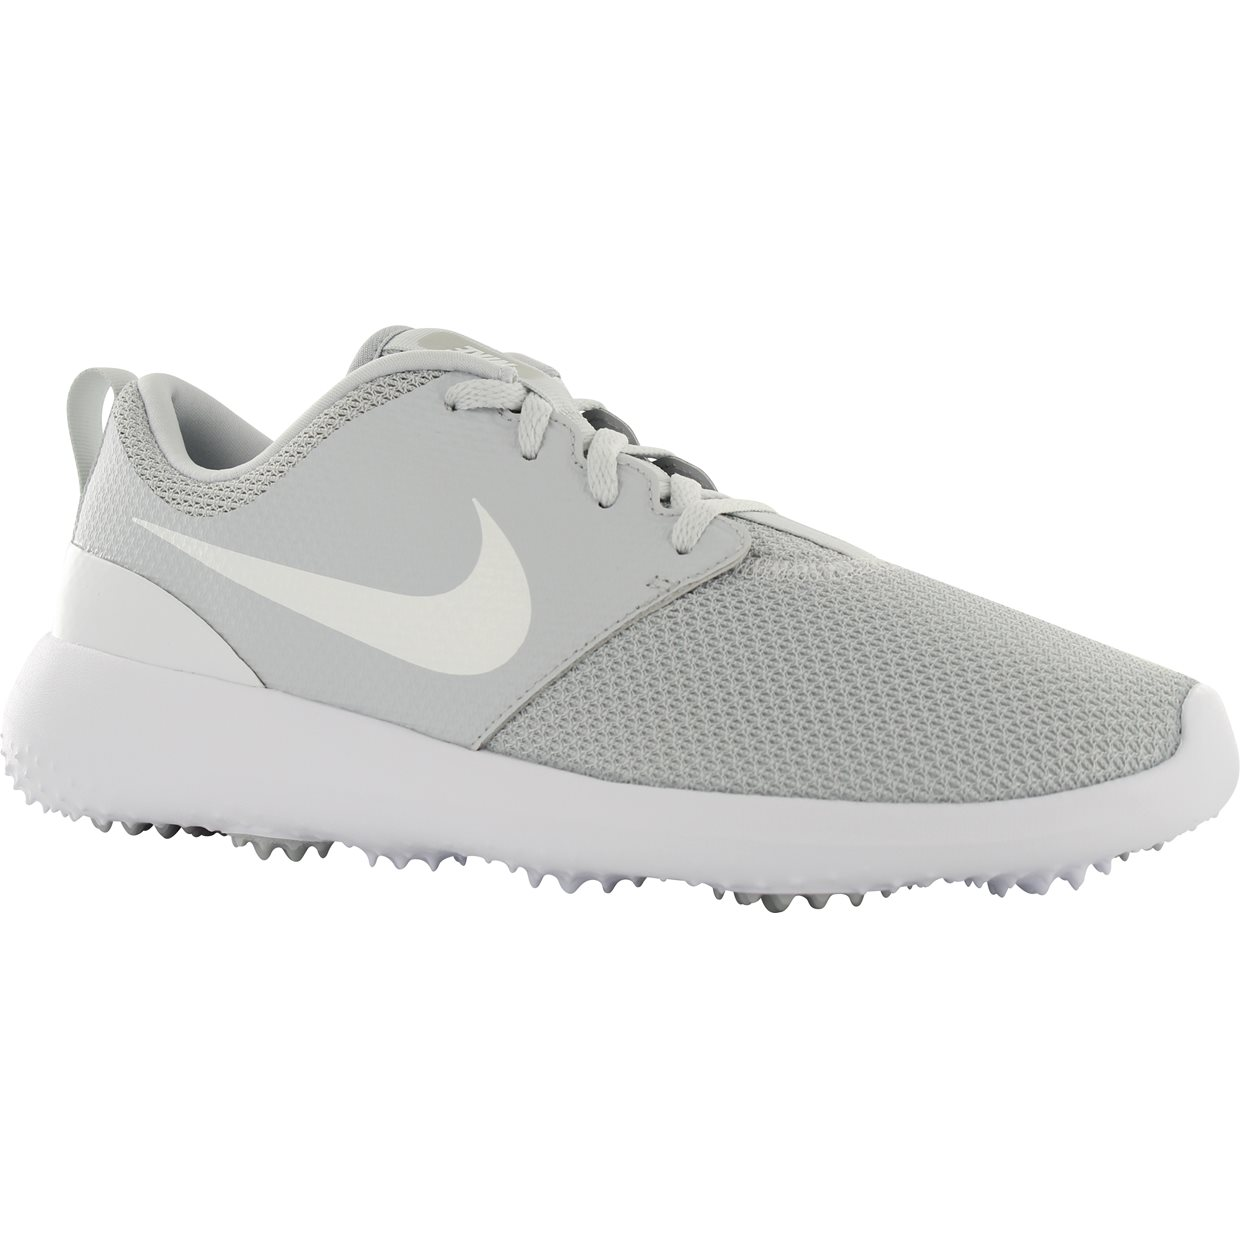 acc32bf93c48 Nike Roshe G Spikeless Shoes. Drag 360 Left or Right to View. Alternate  Product Image View 1 ...